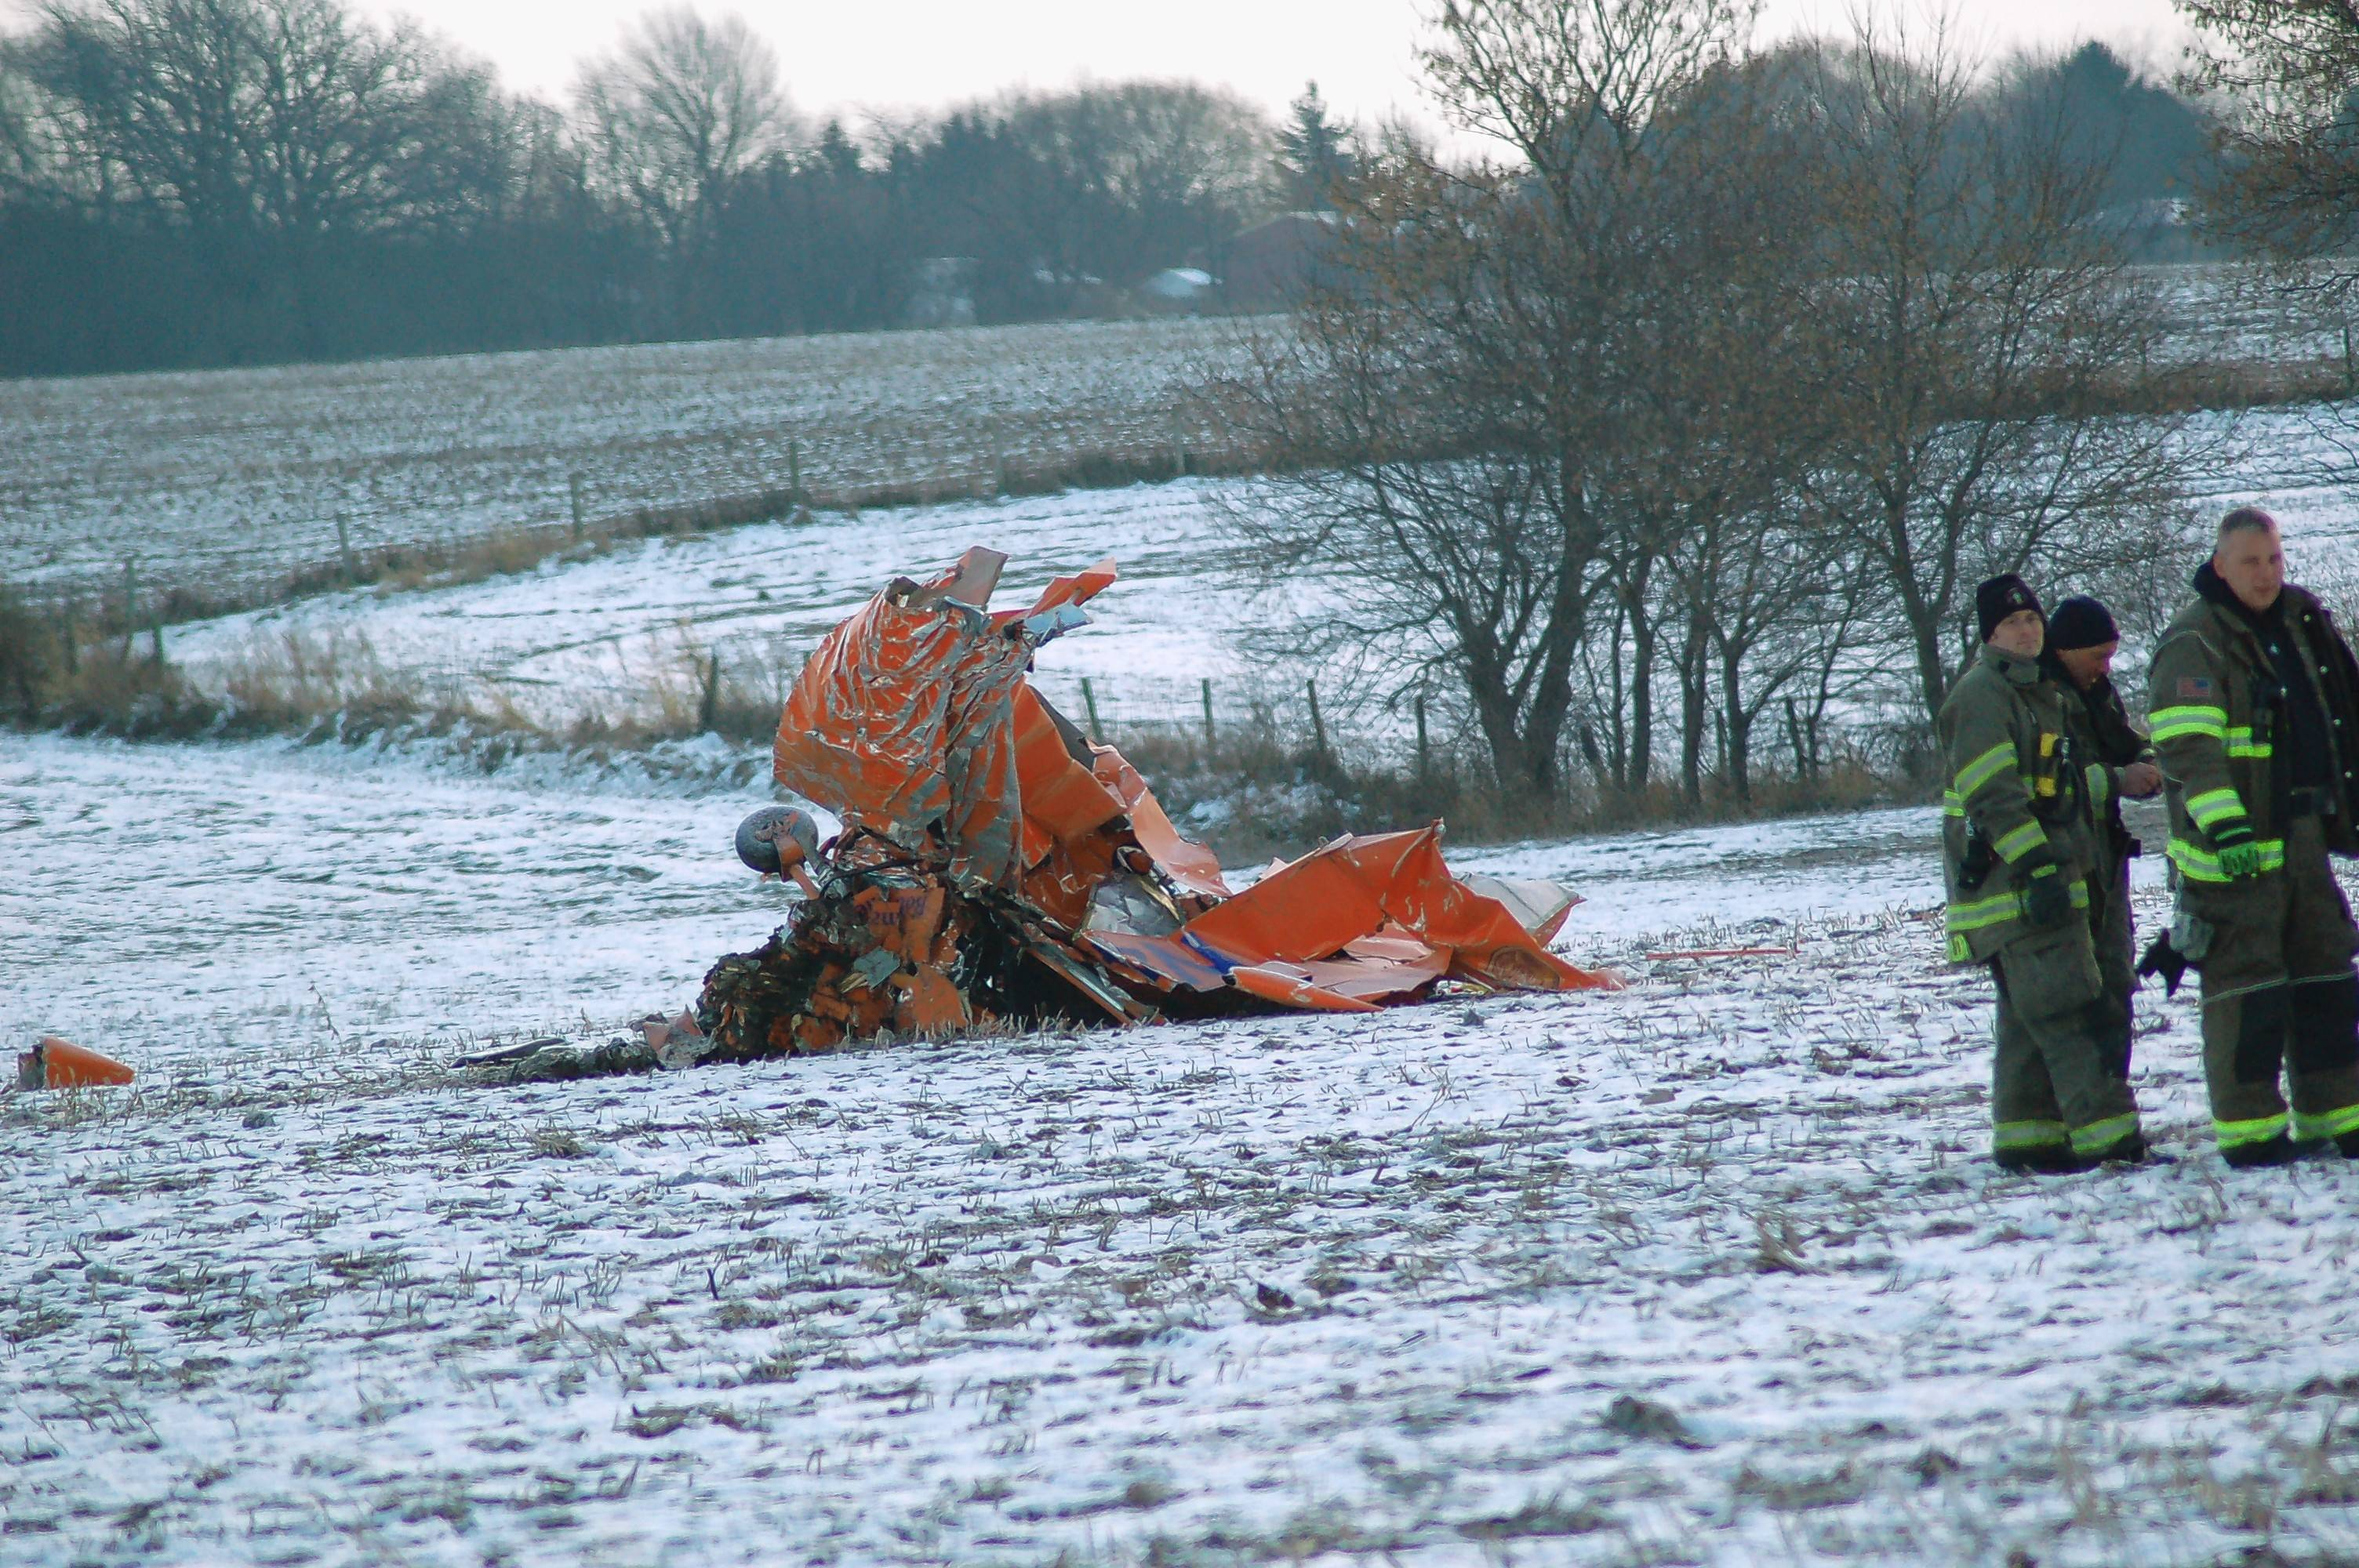 A small plane crashed overnight in a Marengo cornfield. The sole occupant was killed, but the name has not yet been released.